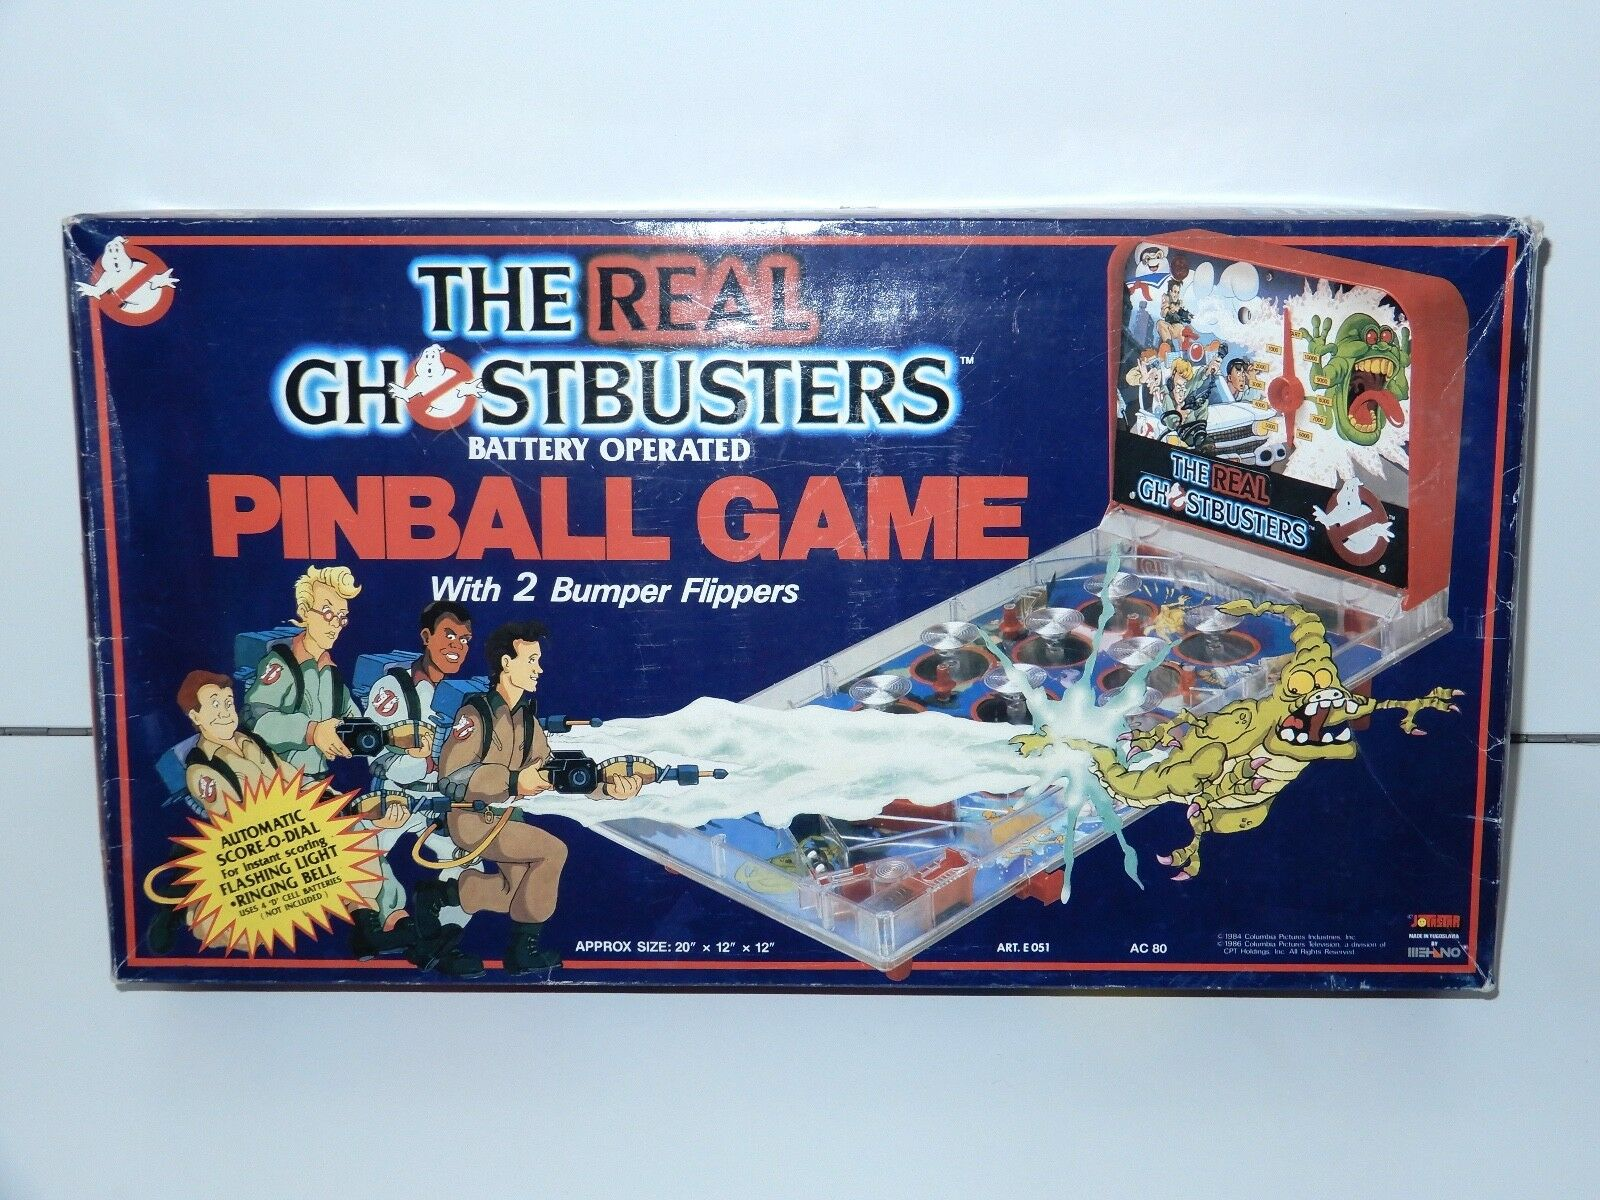 THE REAL GHOSTBUSTERS BATTERY OPERATED PINBALL GAME IN ORIGINAL BOX 1980s WORKS